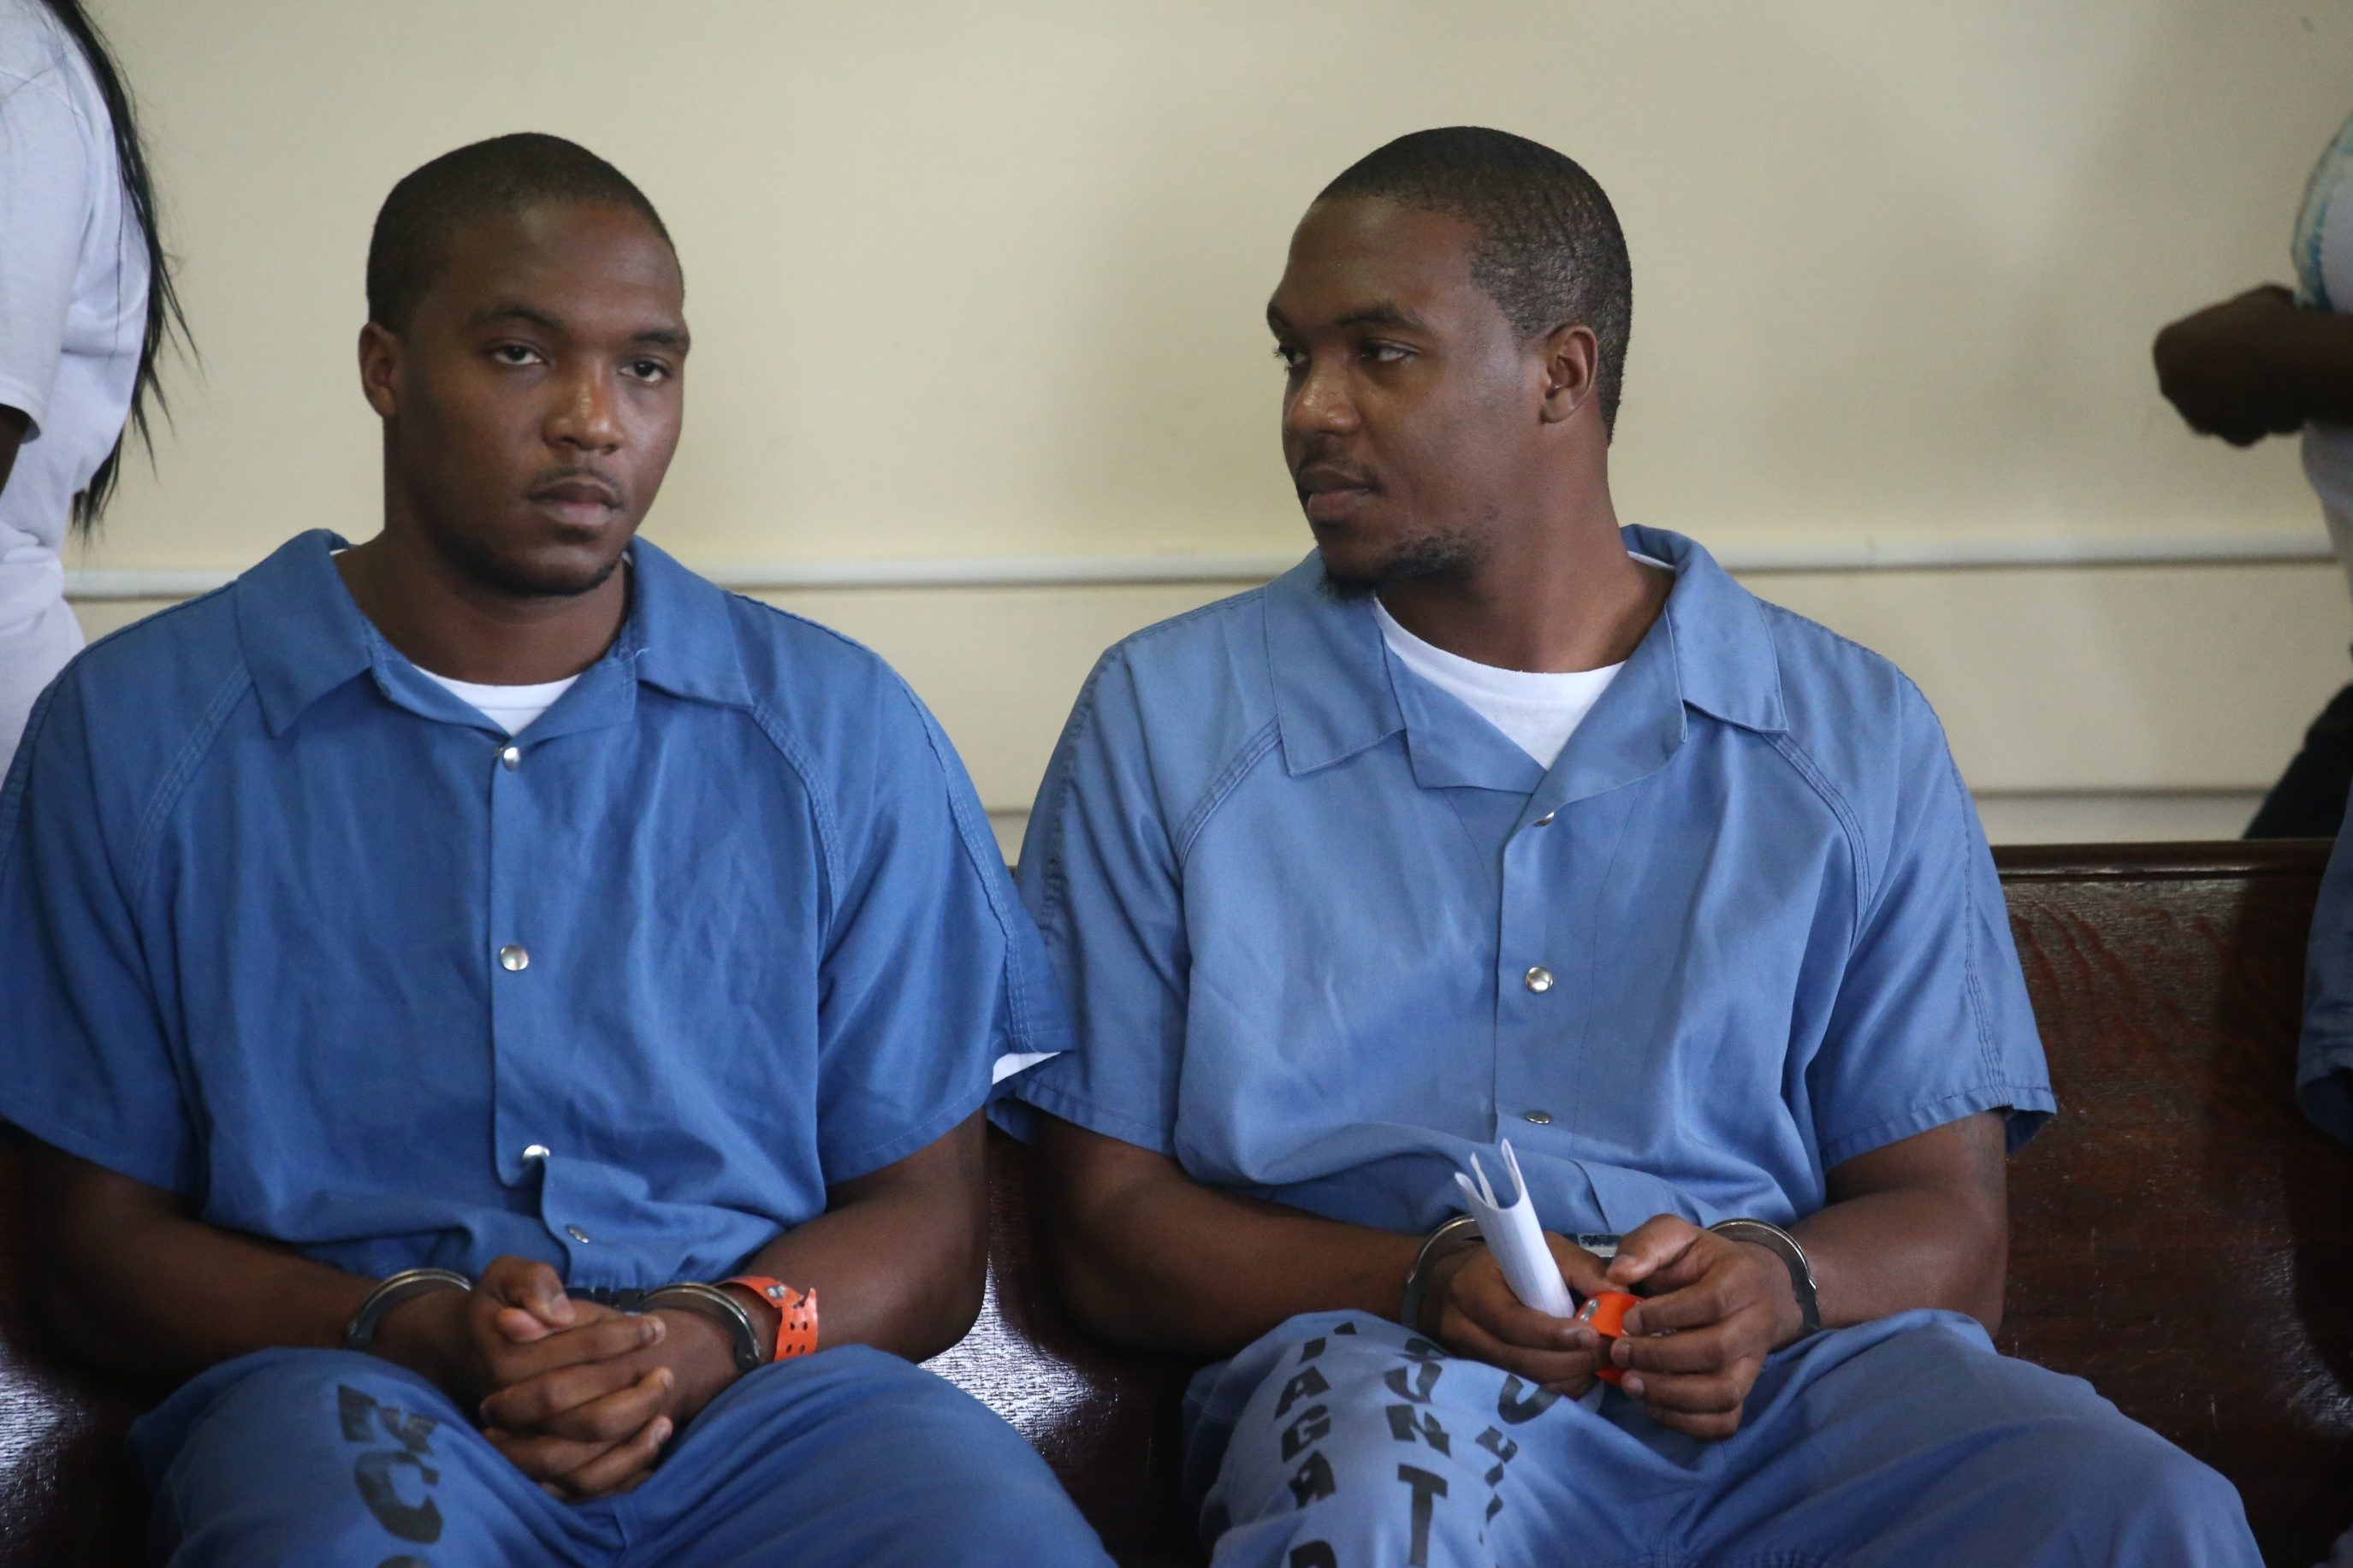 Sentencing was delayed for identical twins Keon McTyere, left, and Deon McTyere until Aug. 4. (John Hickey/Buffalo News)